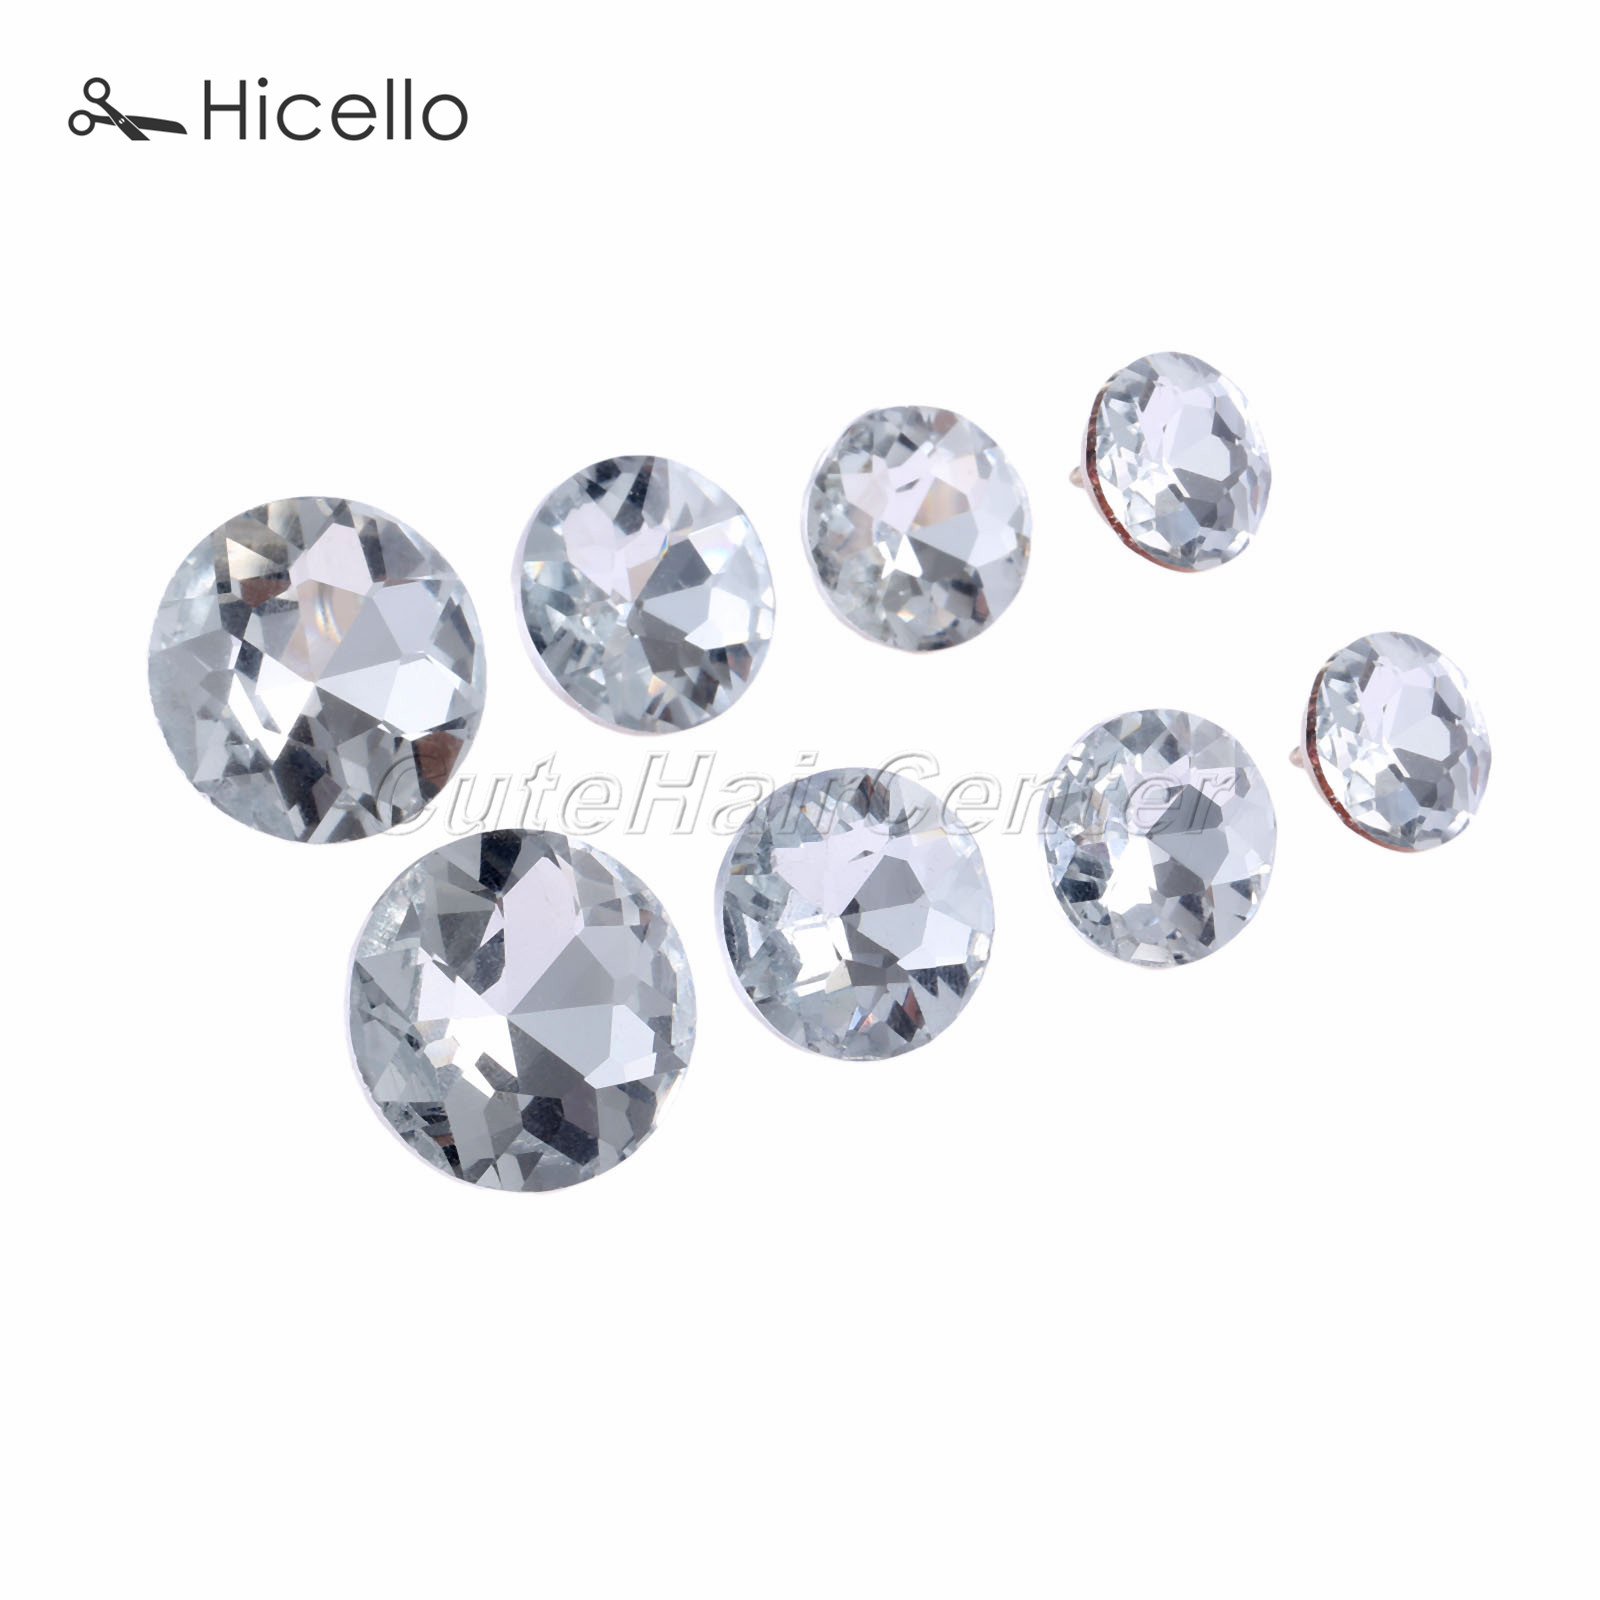 25pcs Silver Crystal Sofa Upholstery Button for Sewing Craft Decoration 16mm